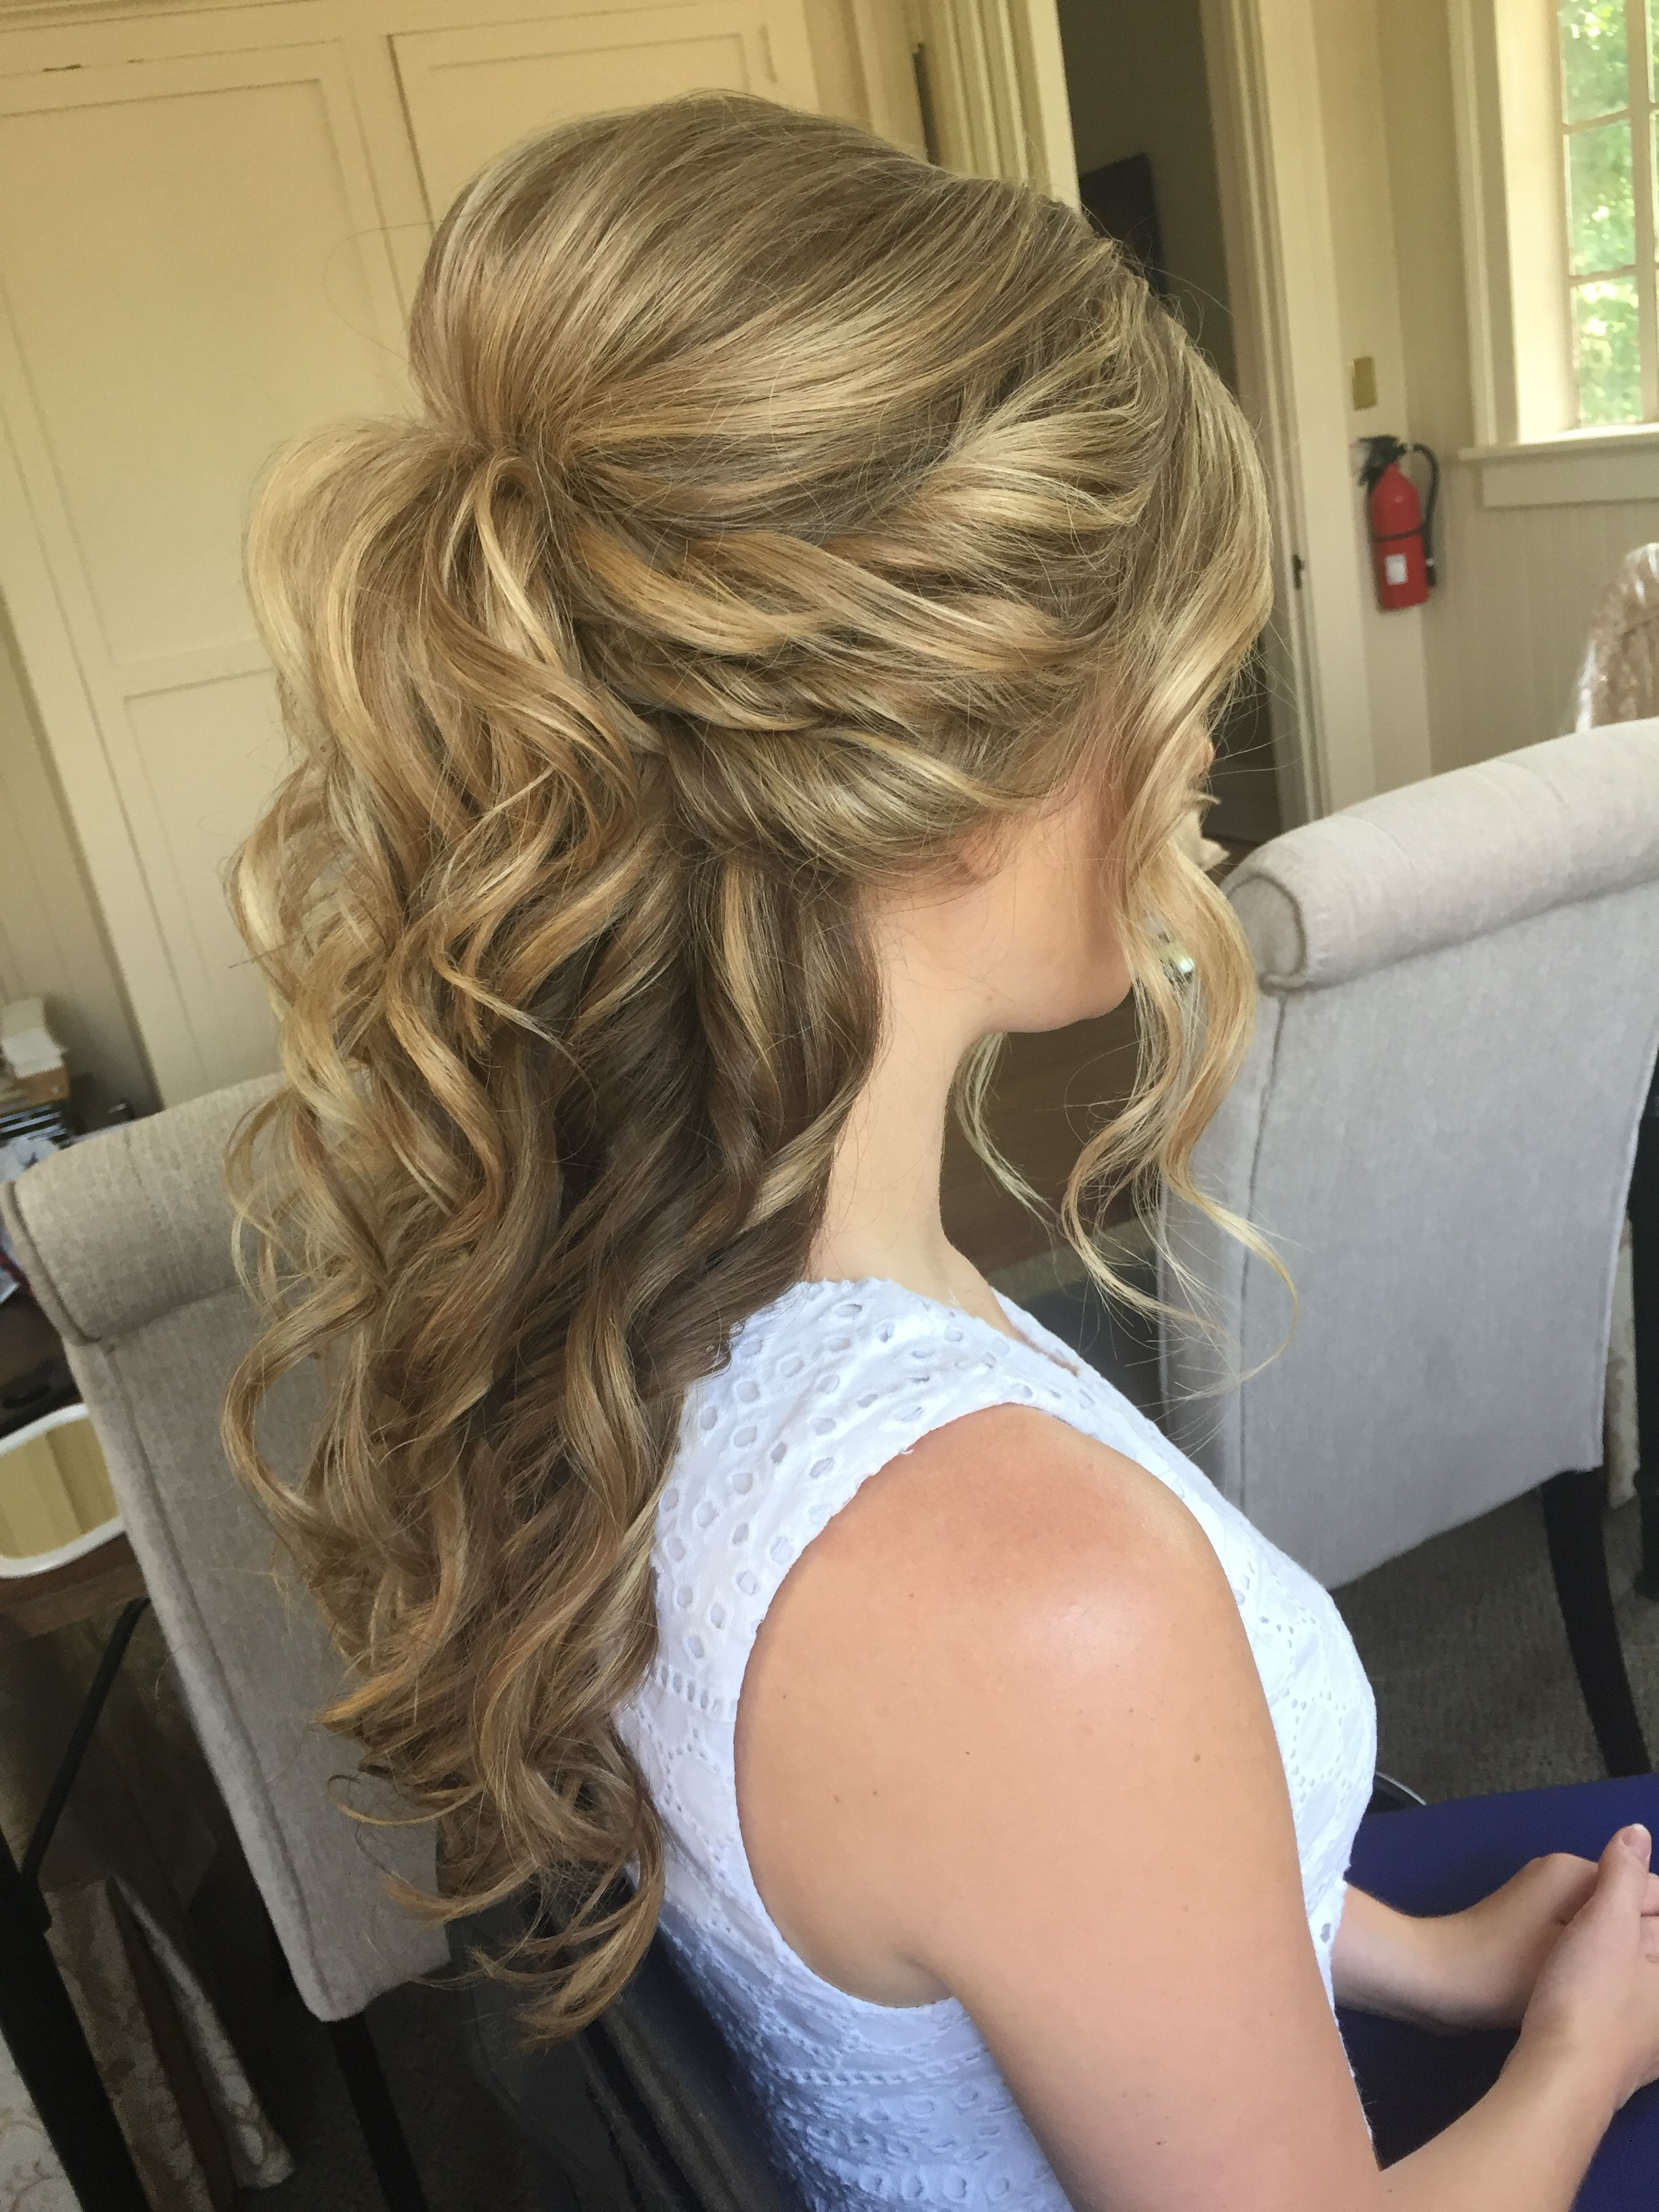 Wedding Hairstyles In 2019 Wedding Hairstyles Wedding Hairstyles